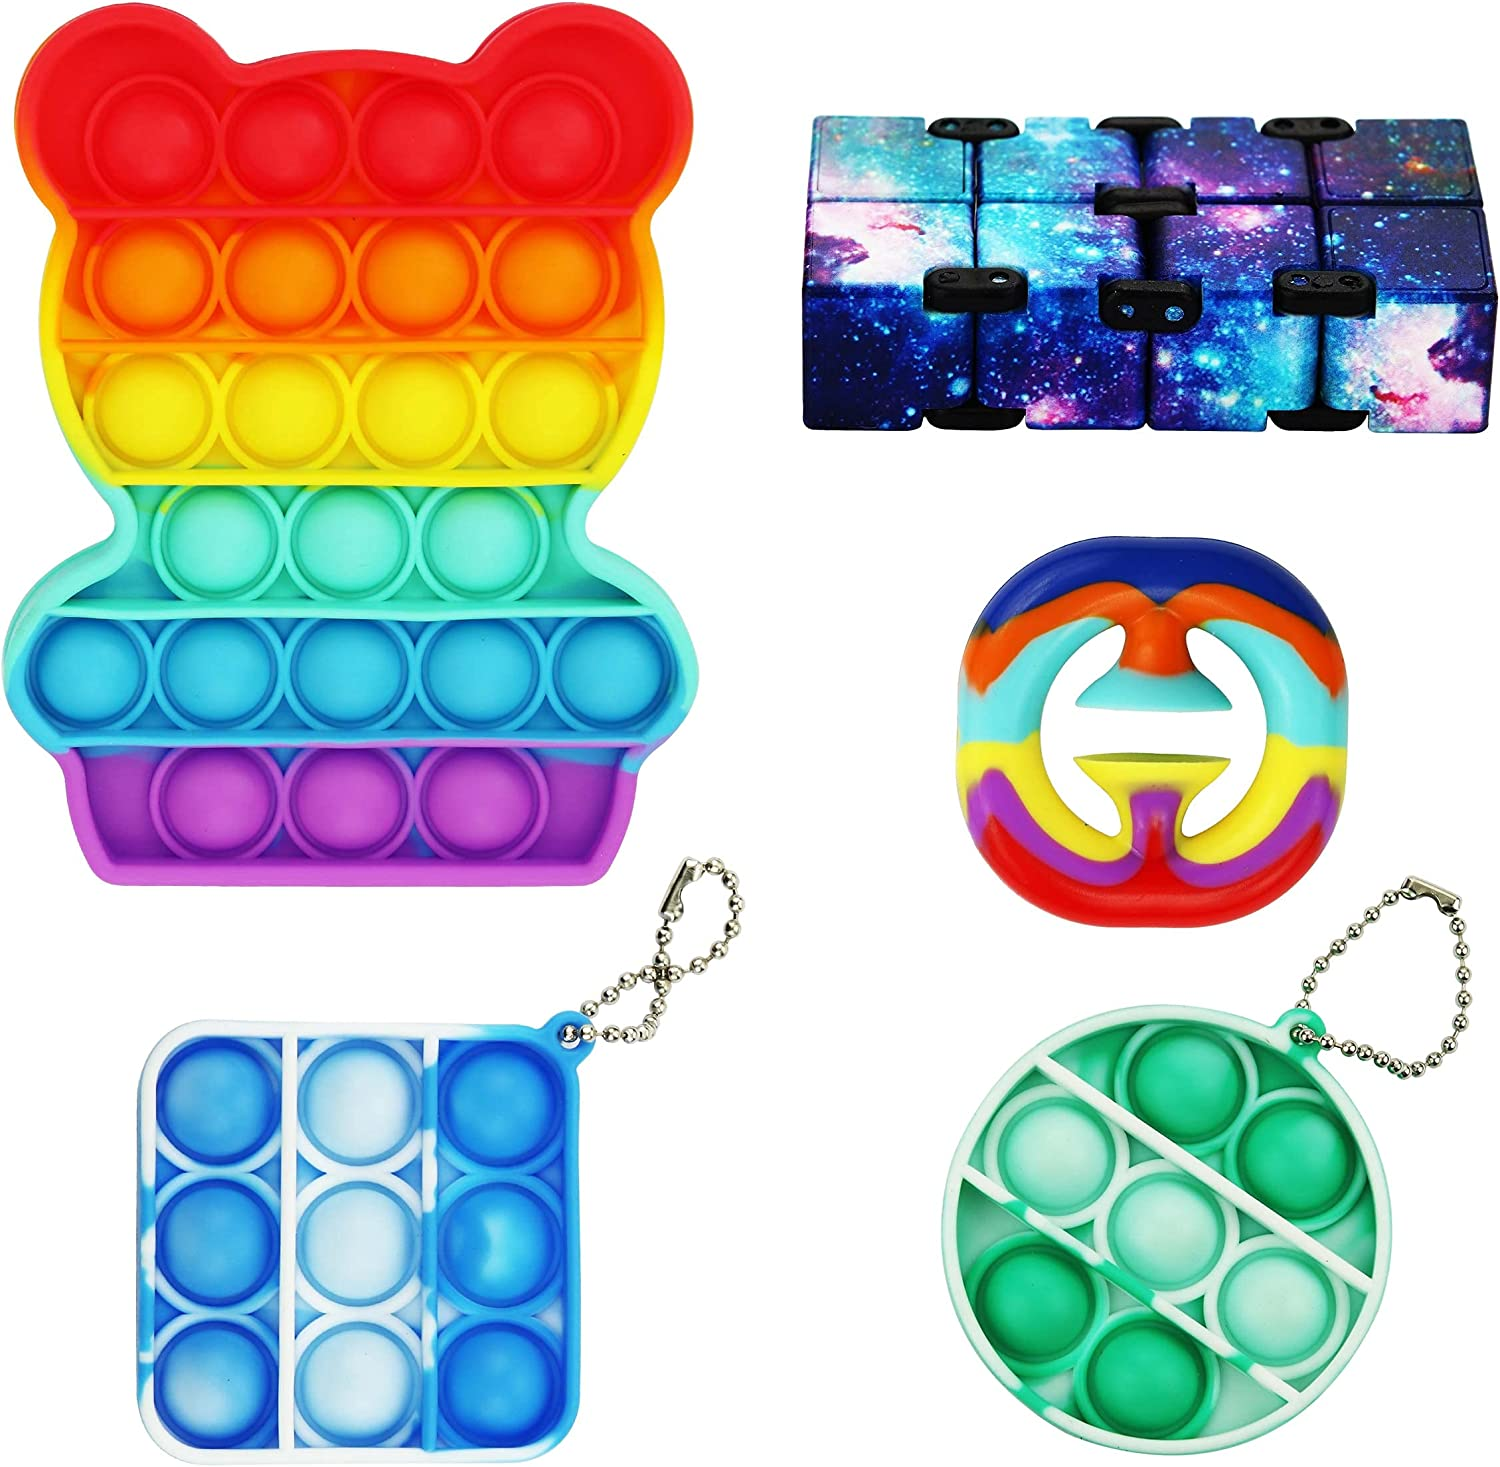 LYL happy 5-Piece Toy Set Infinite Cube Multicolor Bubble Toy Decompression Toy Squeeze Bubble Toy Hand Strength Training Toys Stress Relief Toys